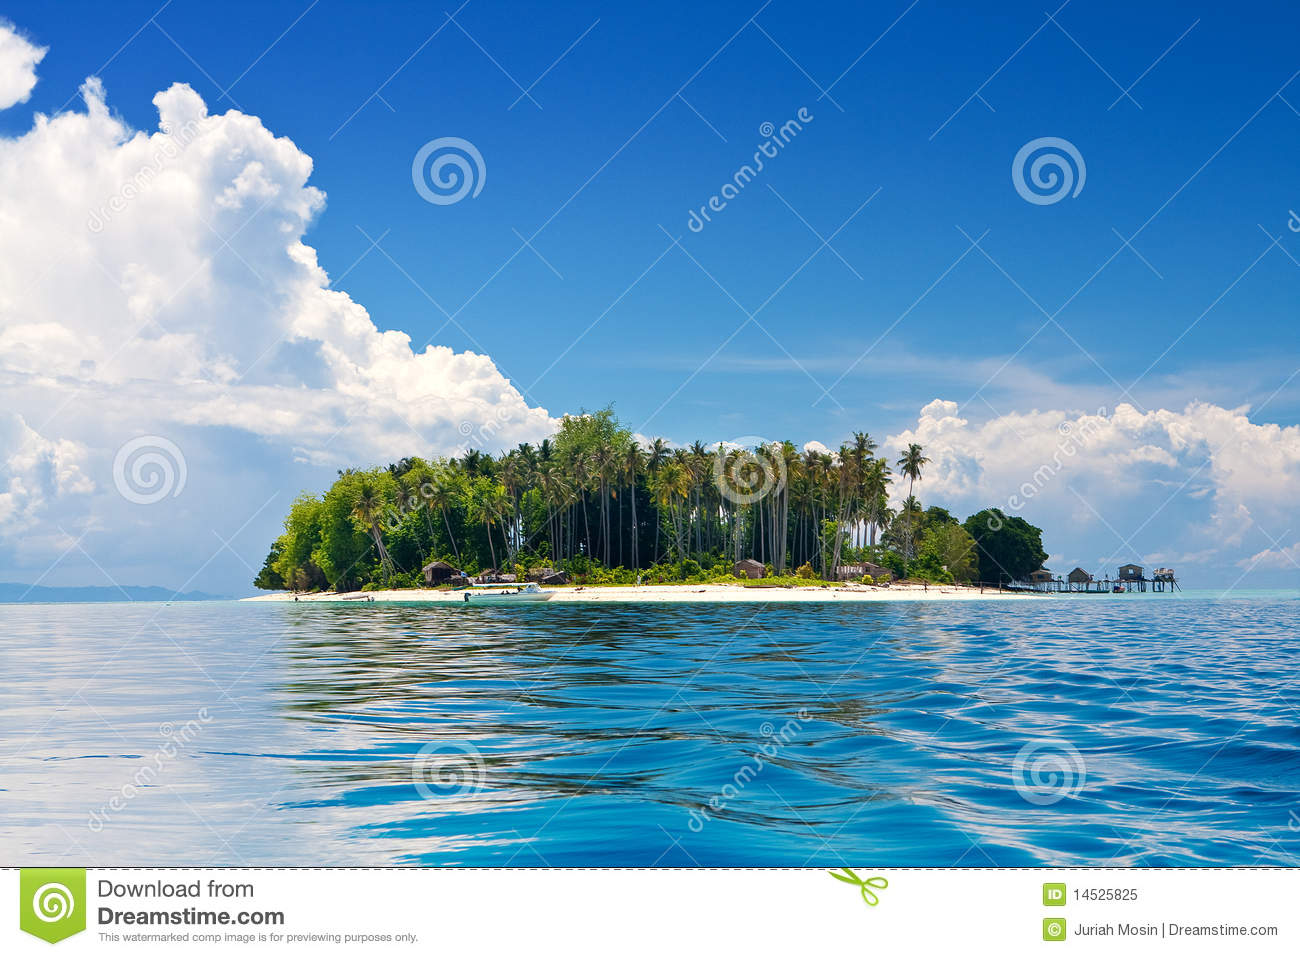 Tropical Island Sun: Tropical Island In The Sun With Blue Skies Royalty Free